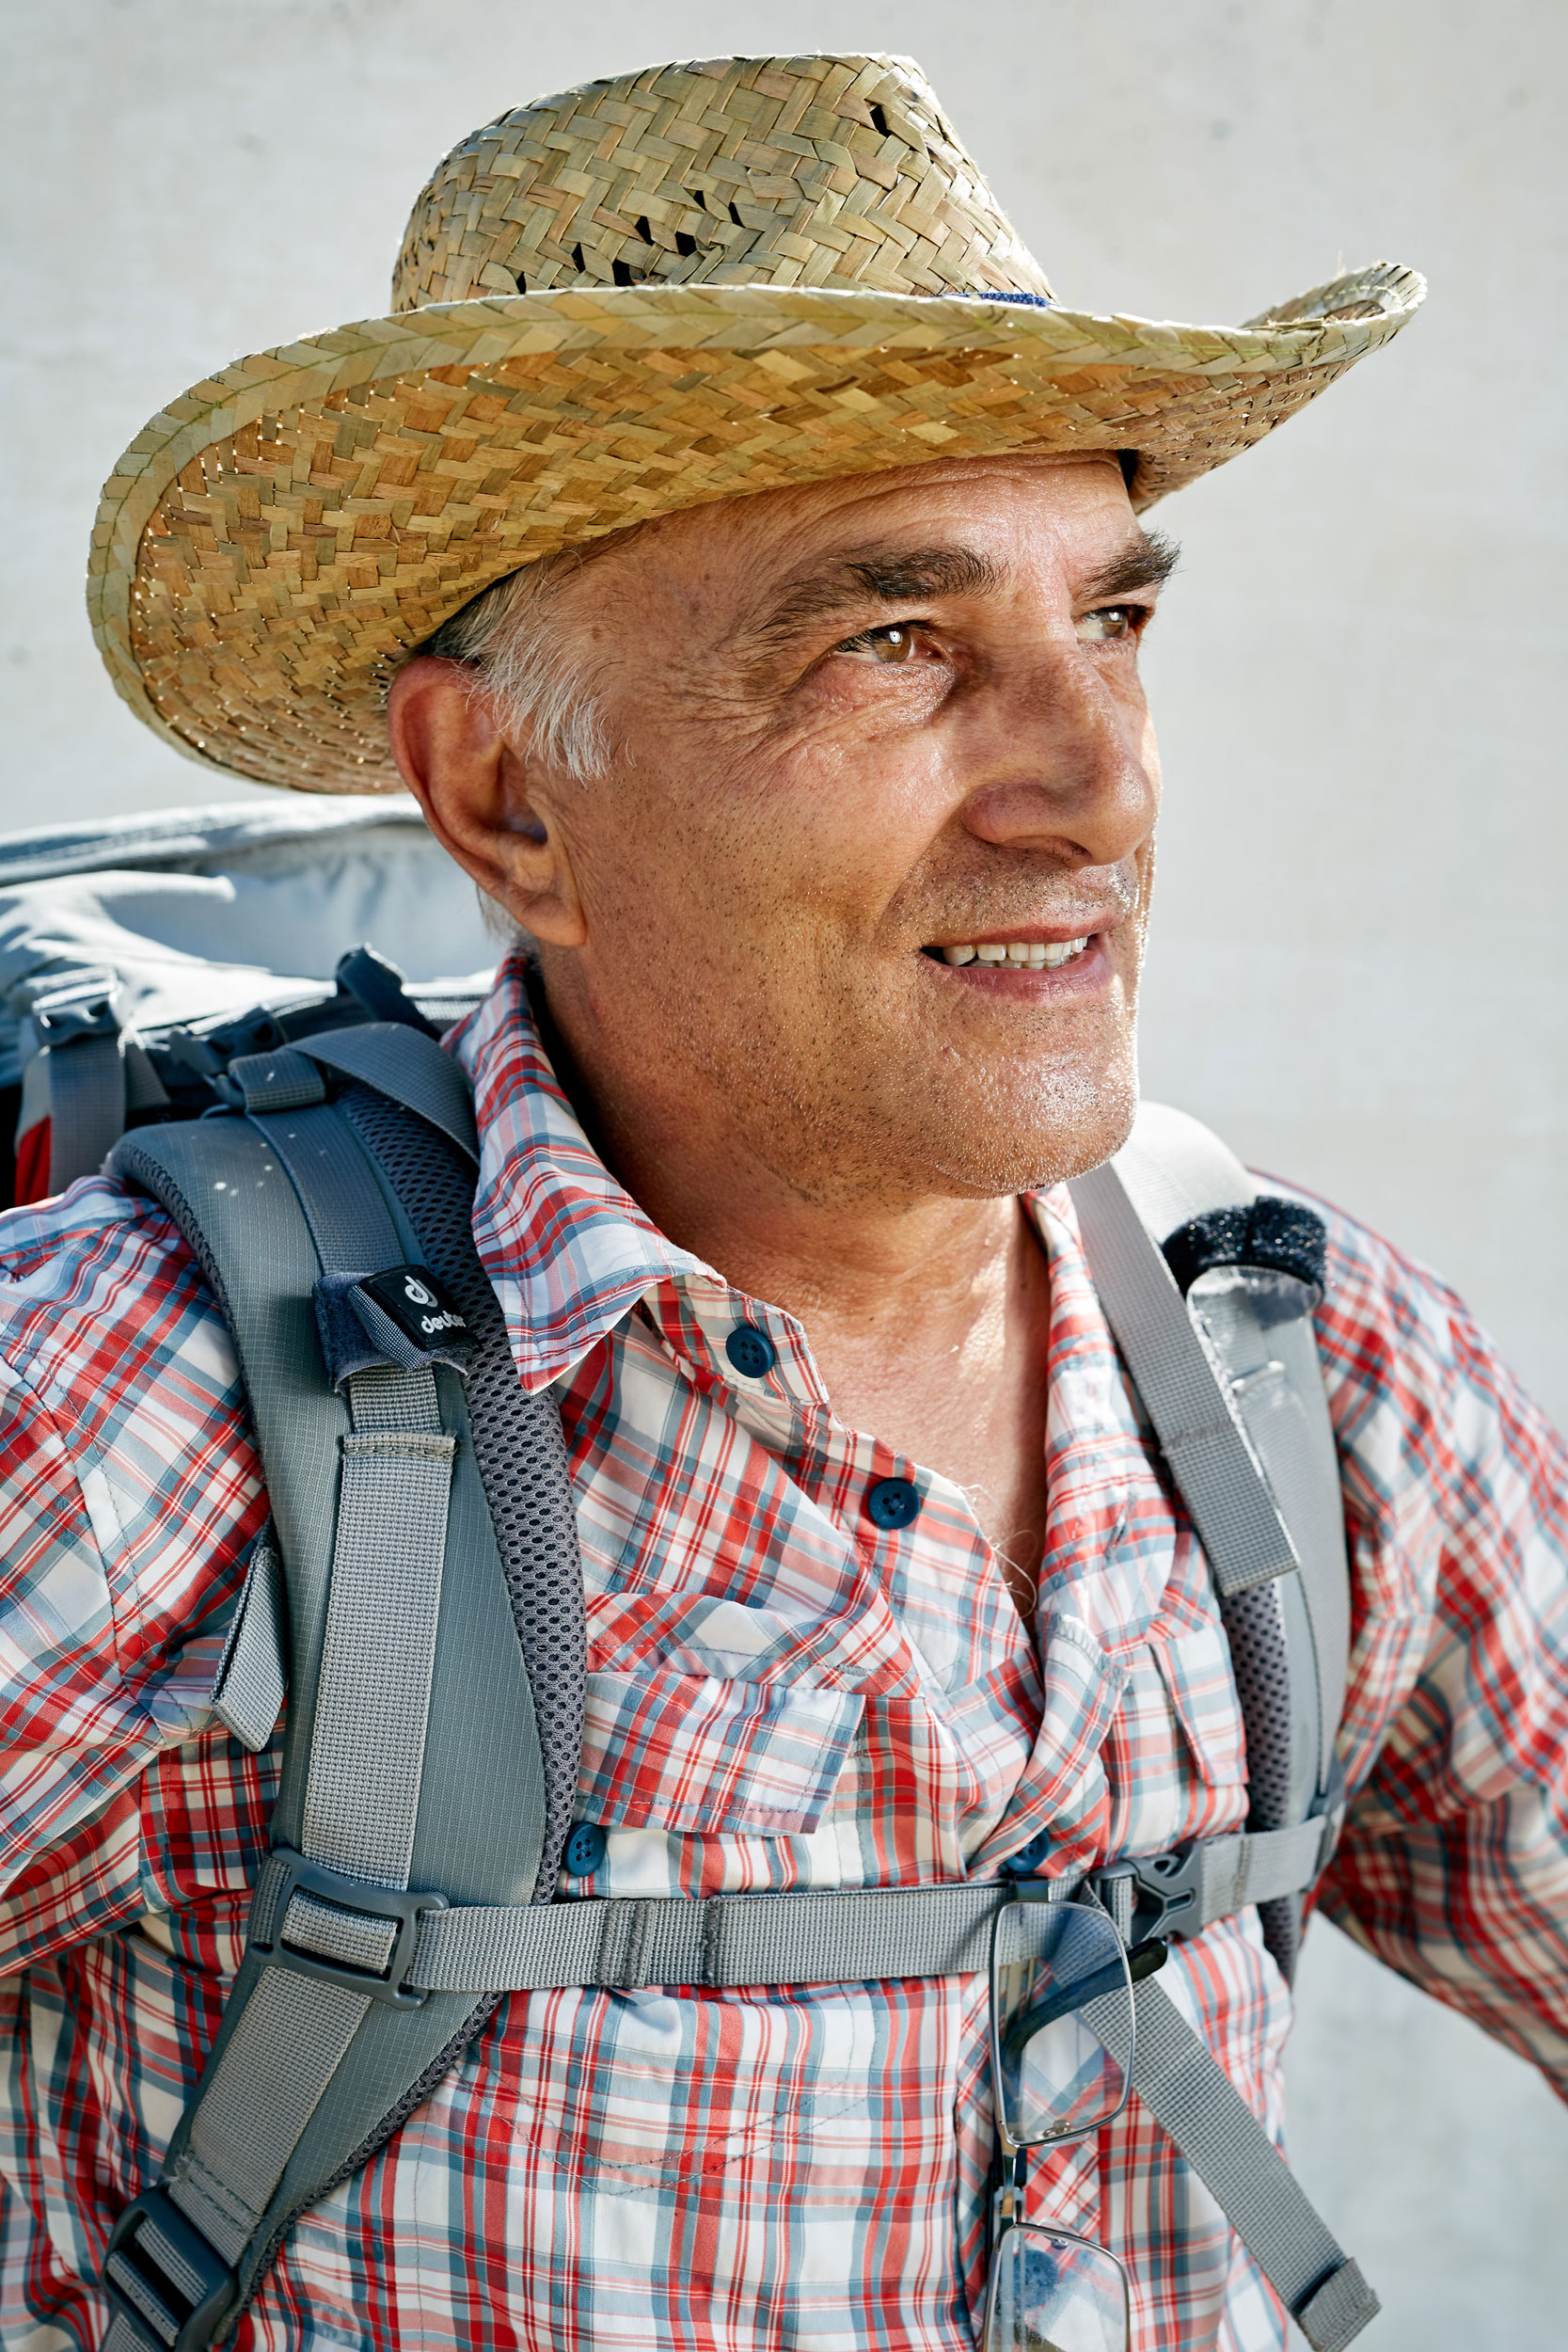 Camino pilgrim with a straw hat and flannel shirt by documentary portrait photographer Duncan Elliott